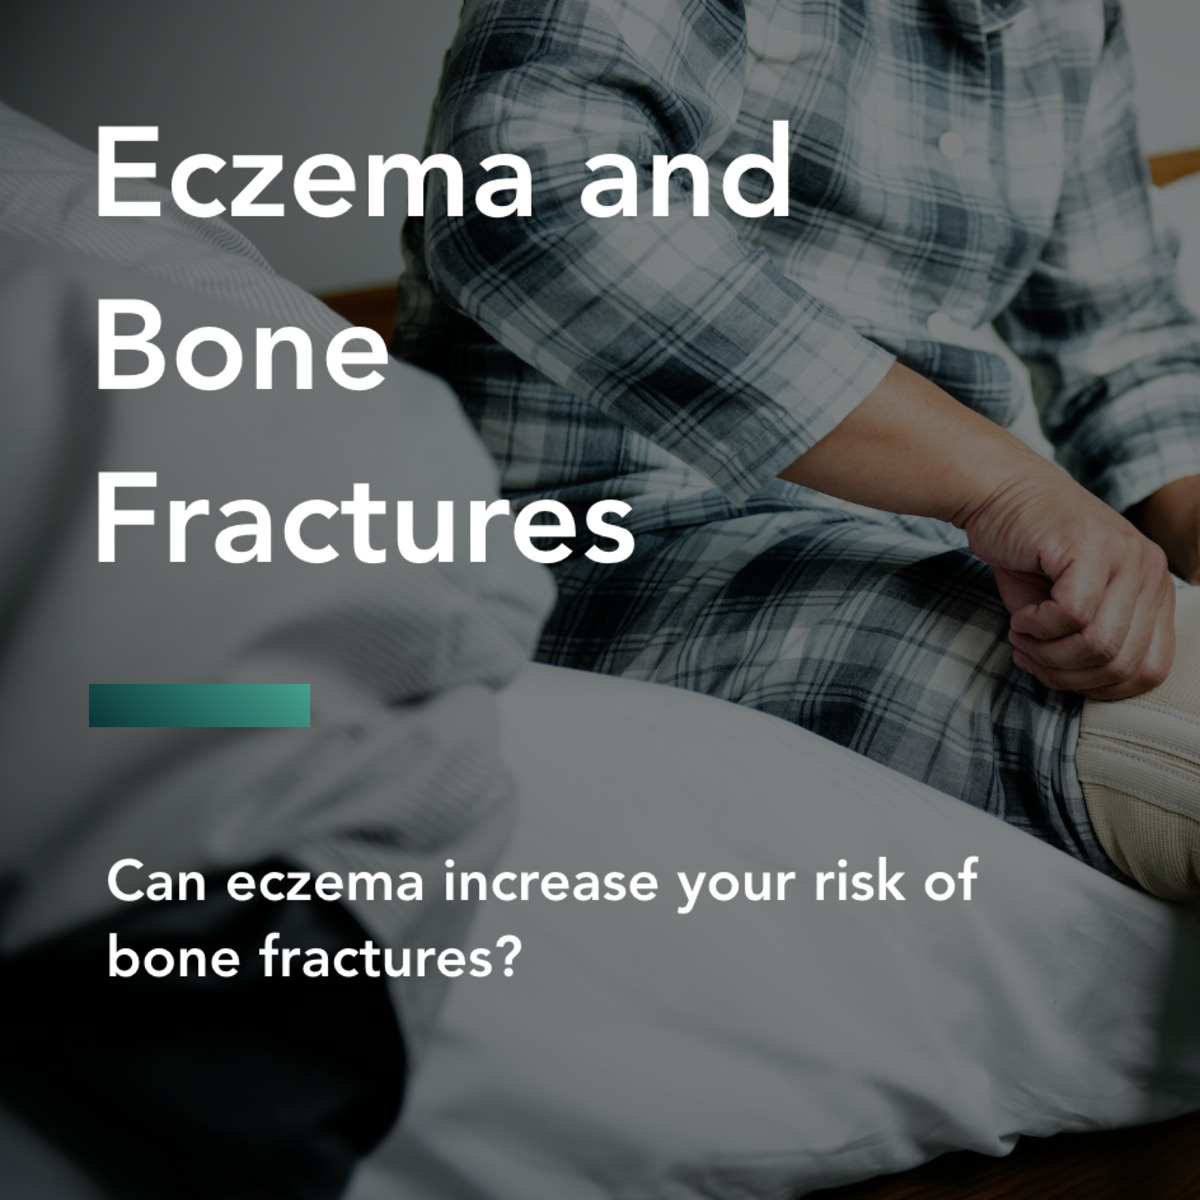 Eczema and bone fractures title